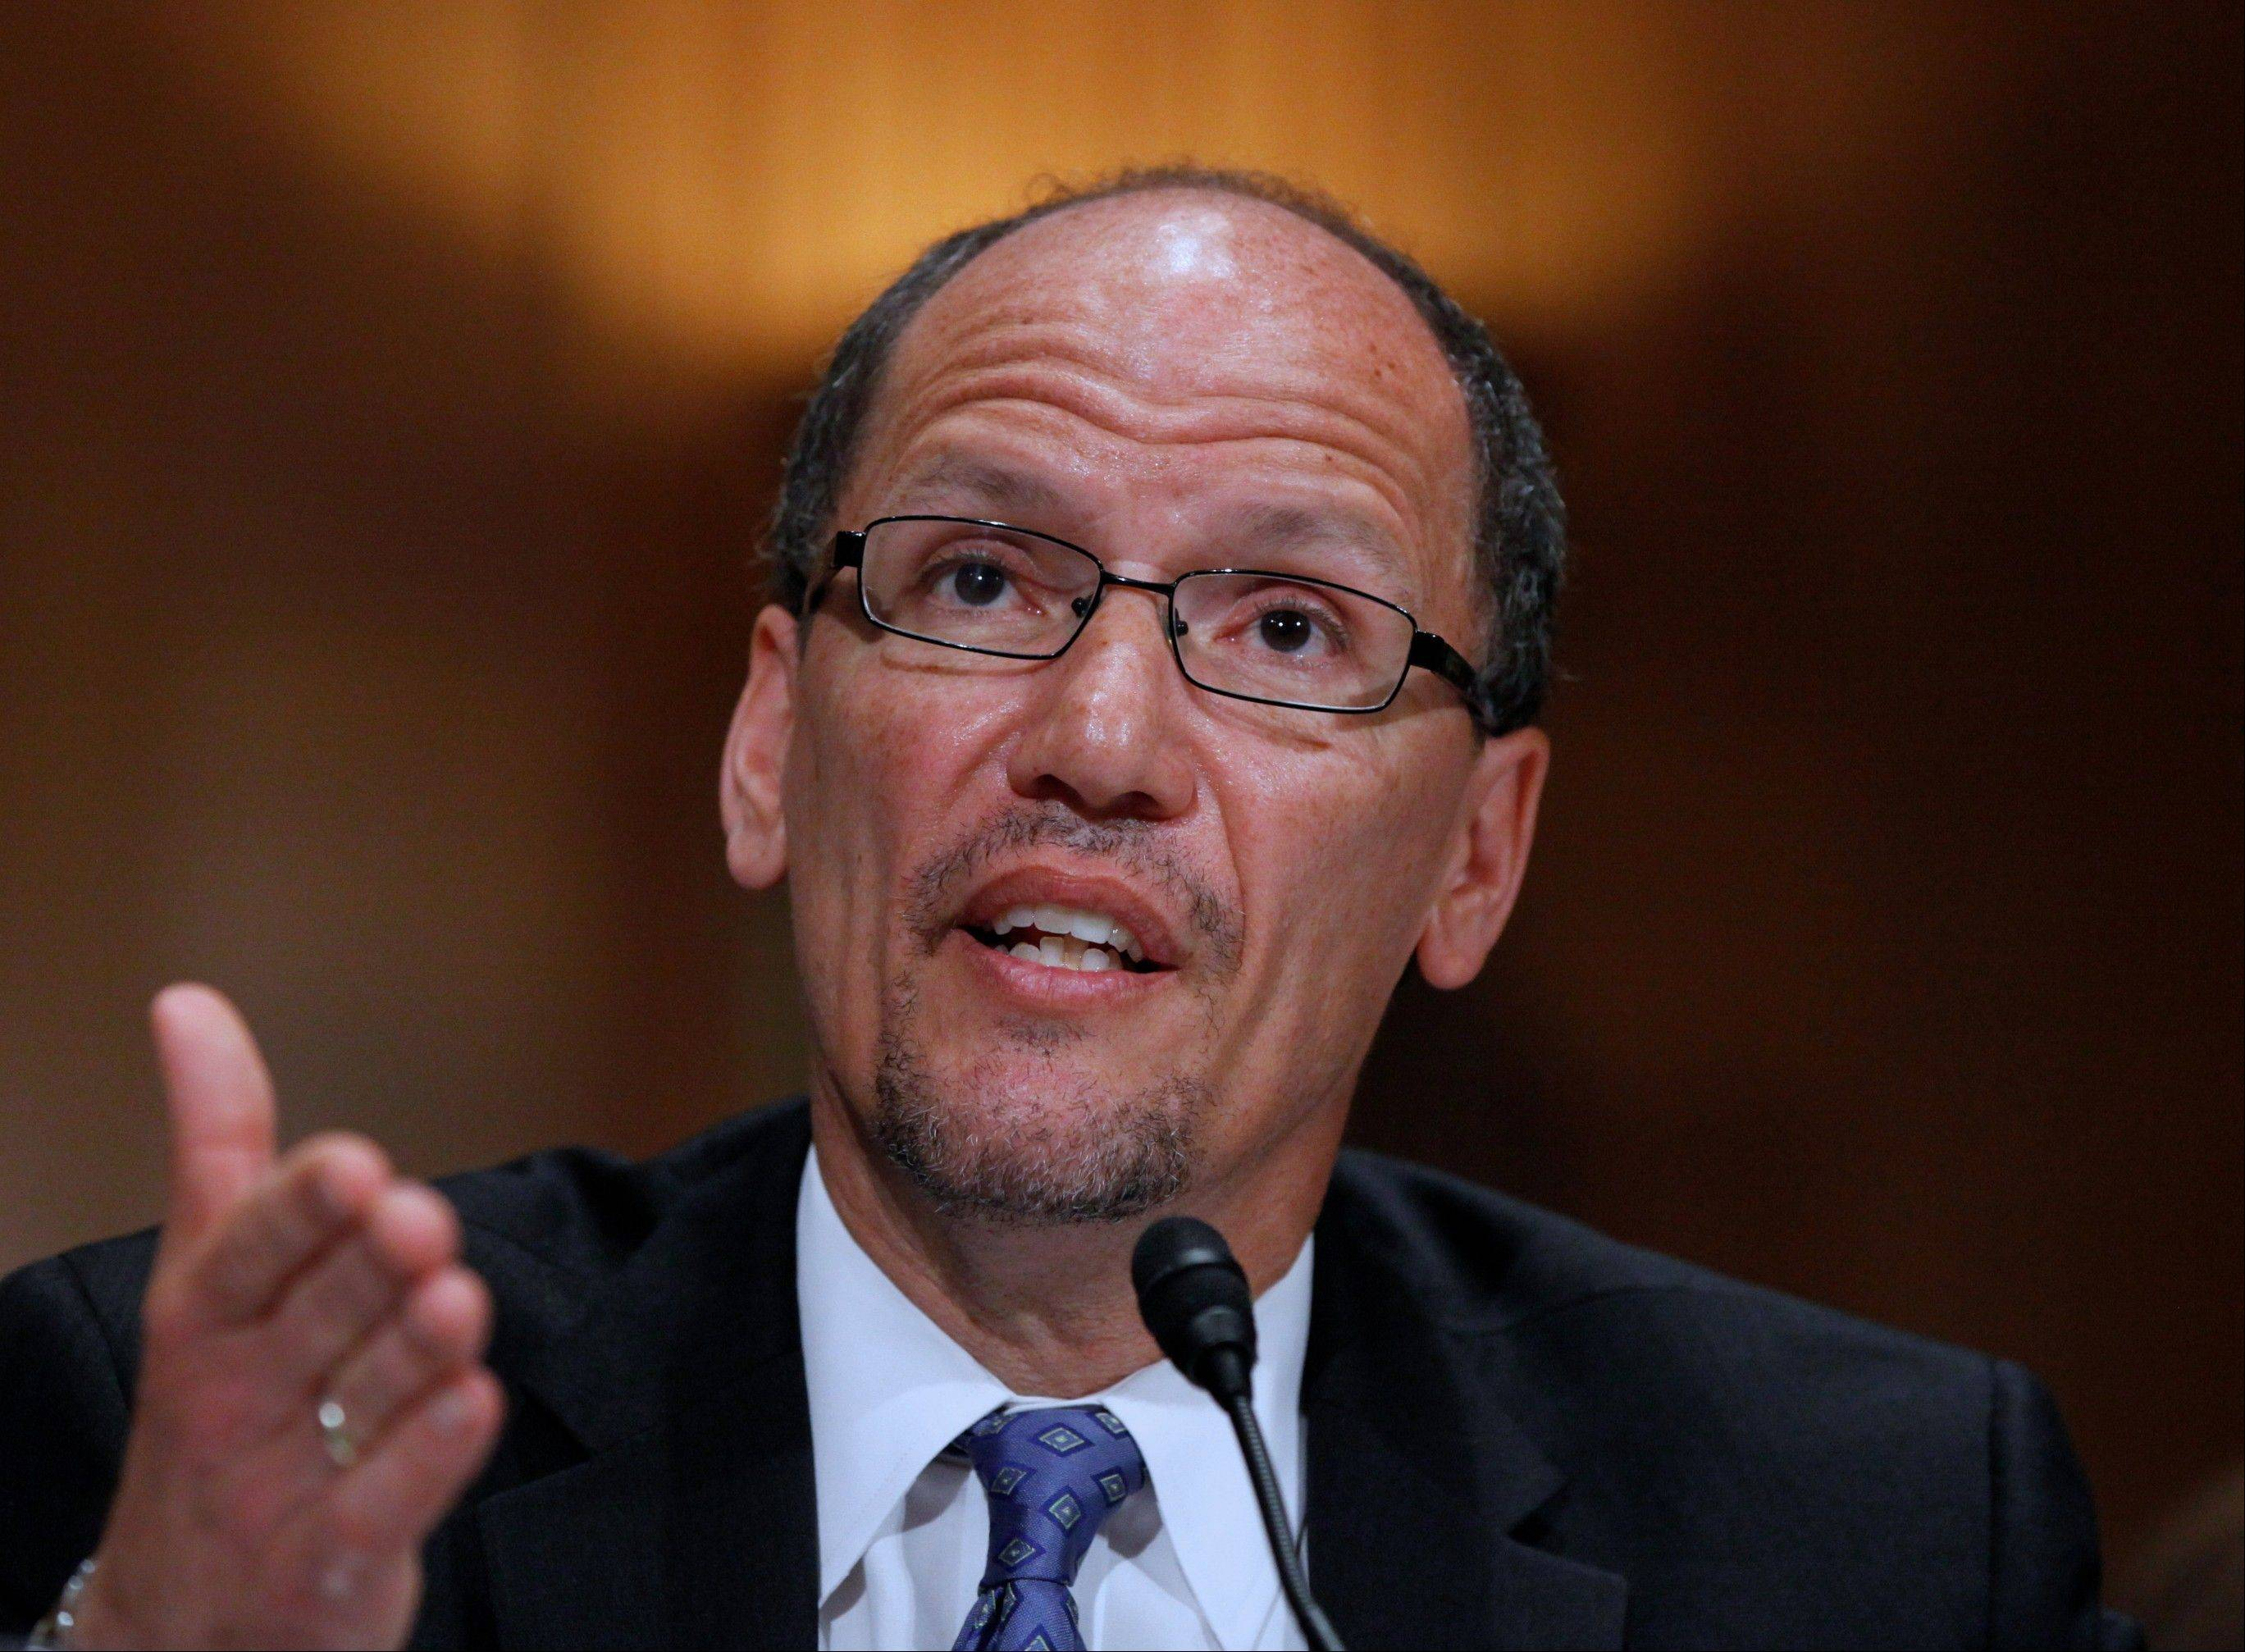 Labor Secretary Thomas Perez said recent fast food worker strikes are another sign of the need to raise the minimum wage for all workers.